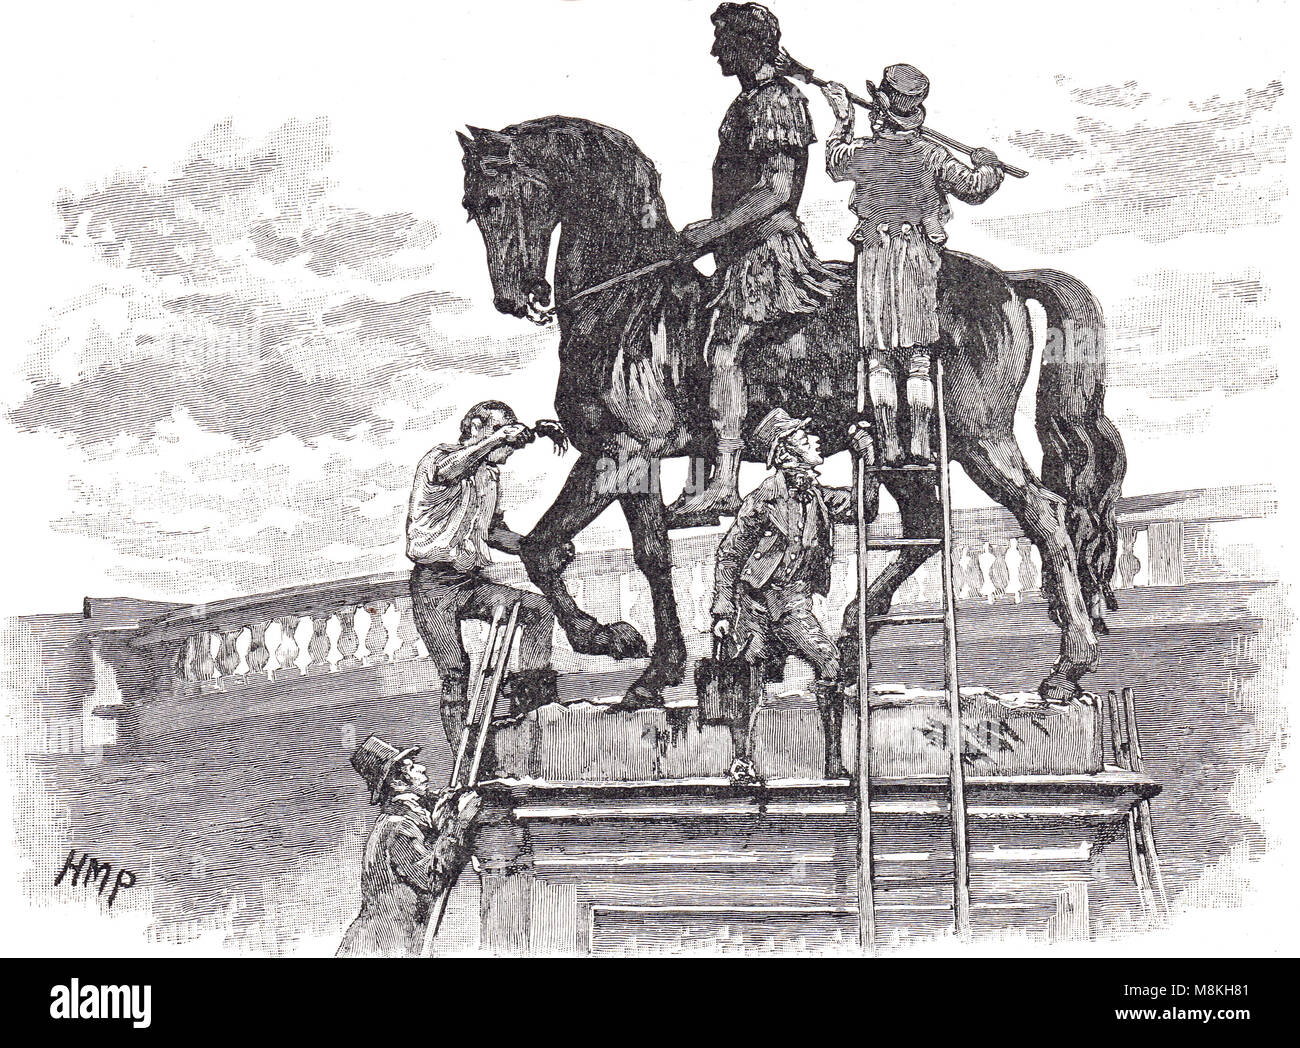 The equestrian statue of king William III, painted black by Irish republicans, Dublin, Ireland, November 1805, - Stock Image